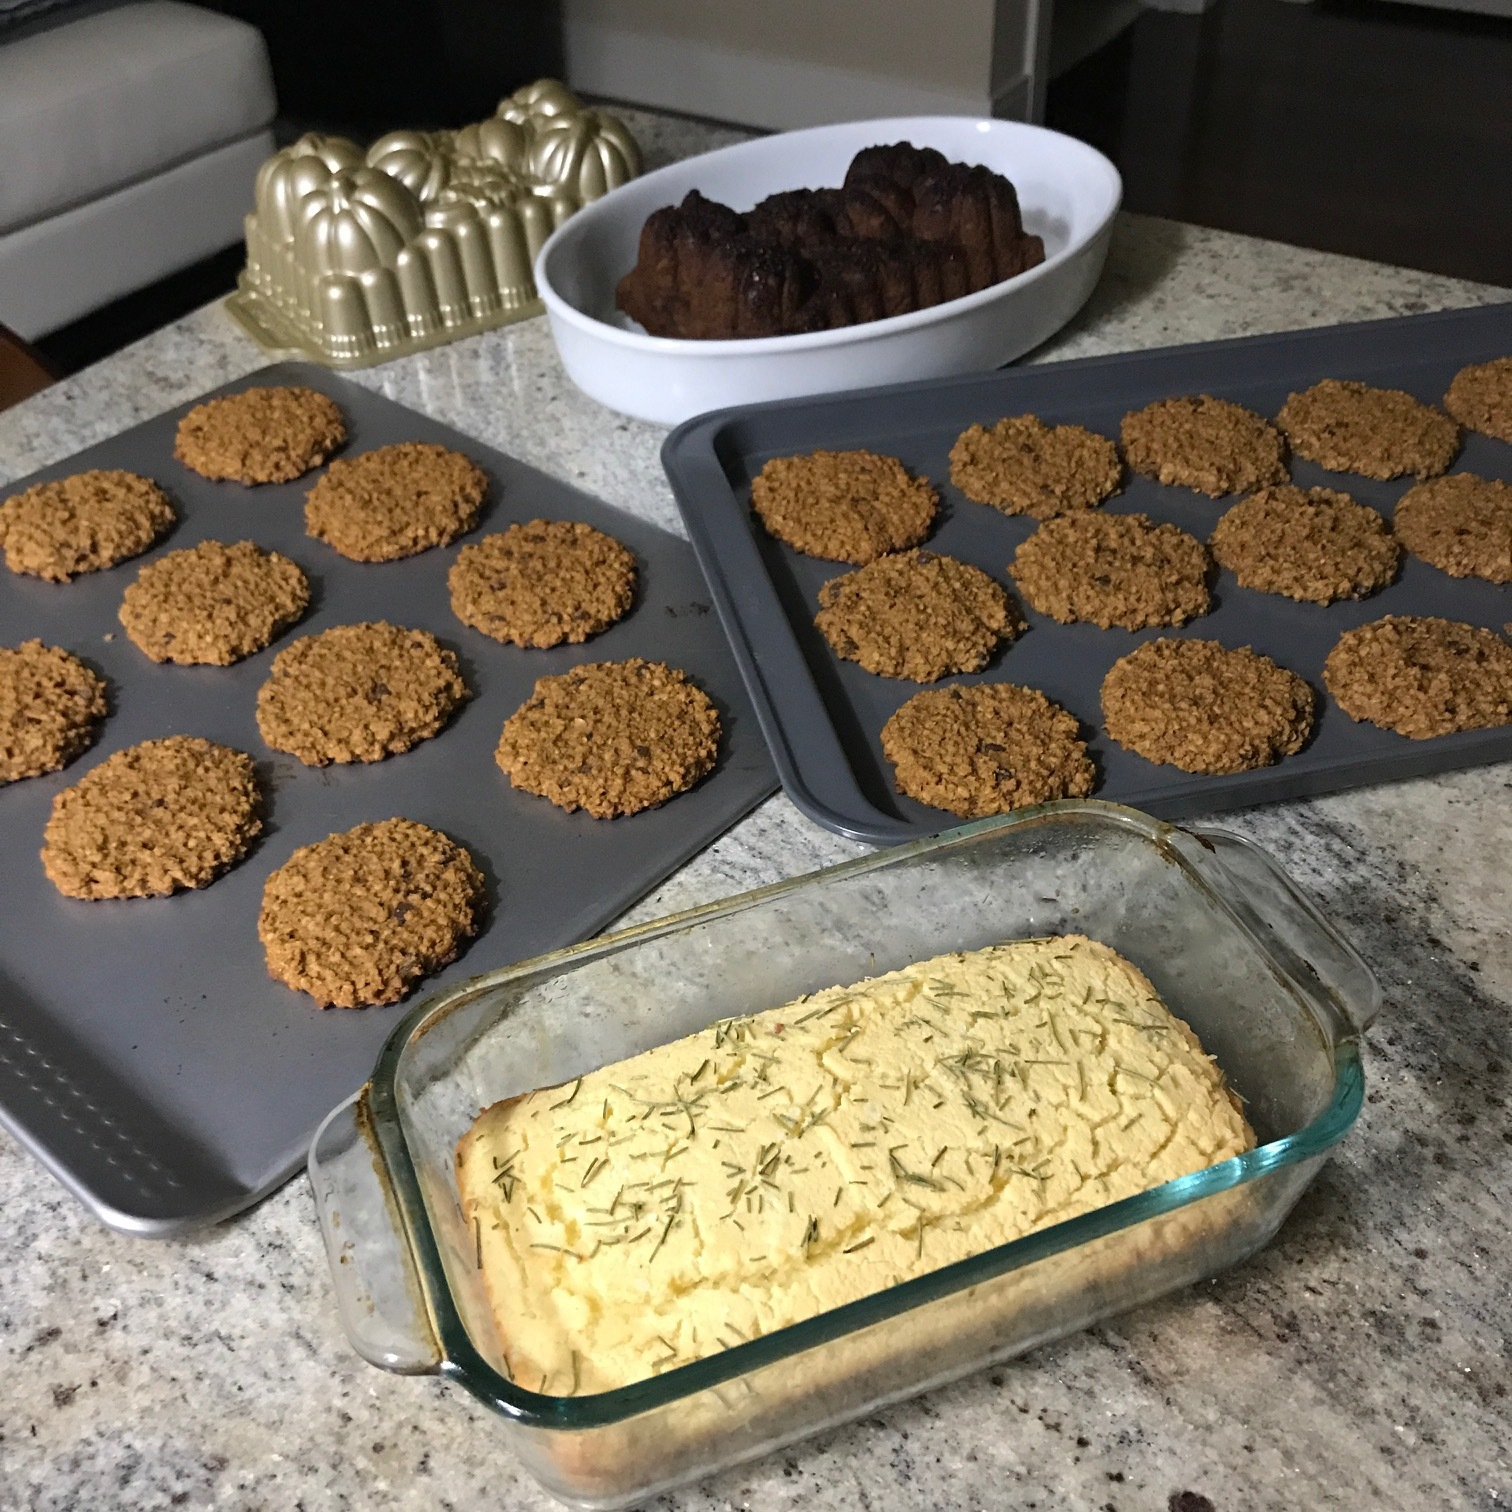 I did a little baking that day, to say the least.